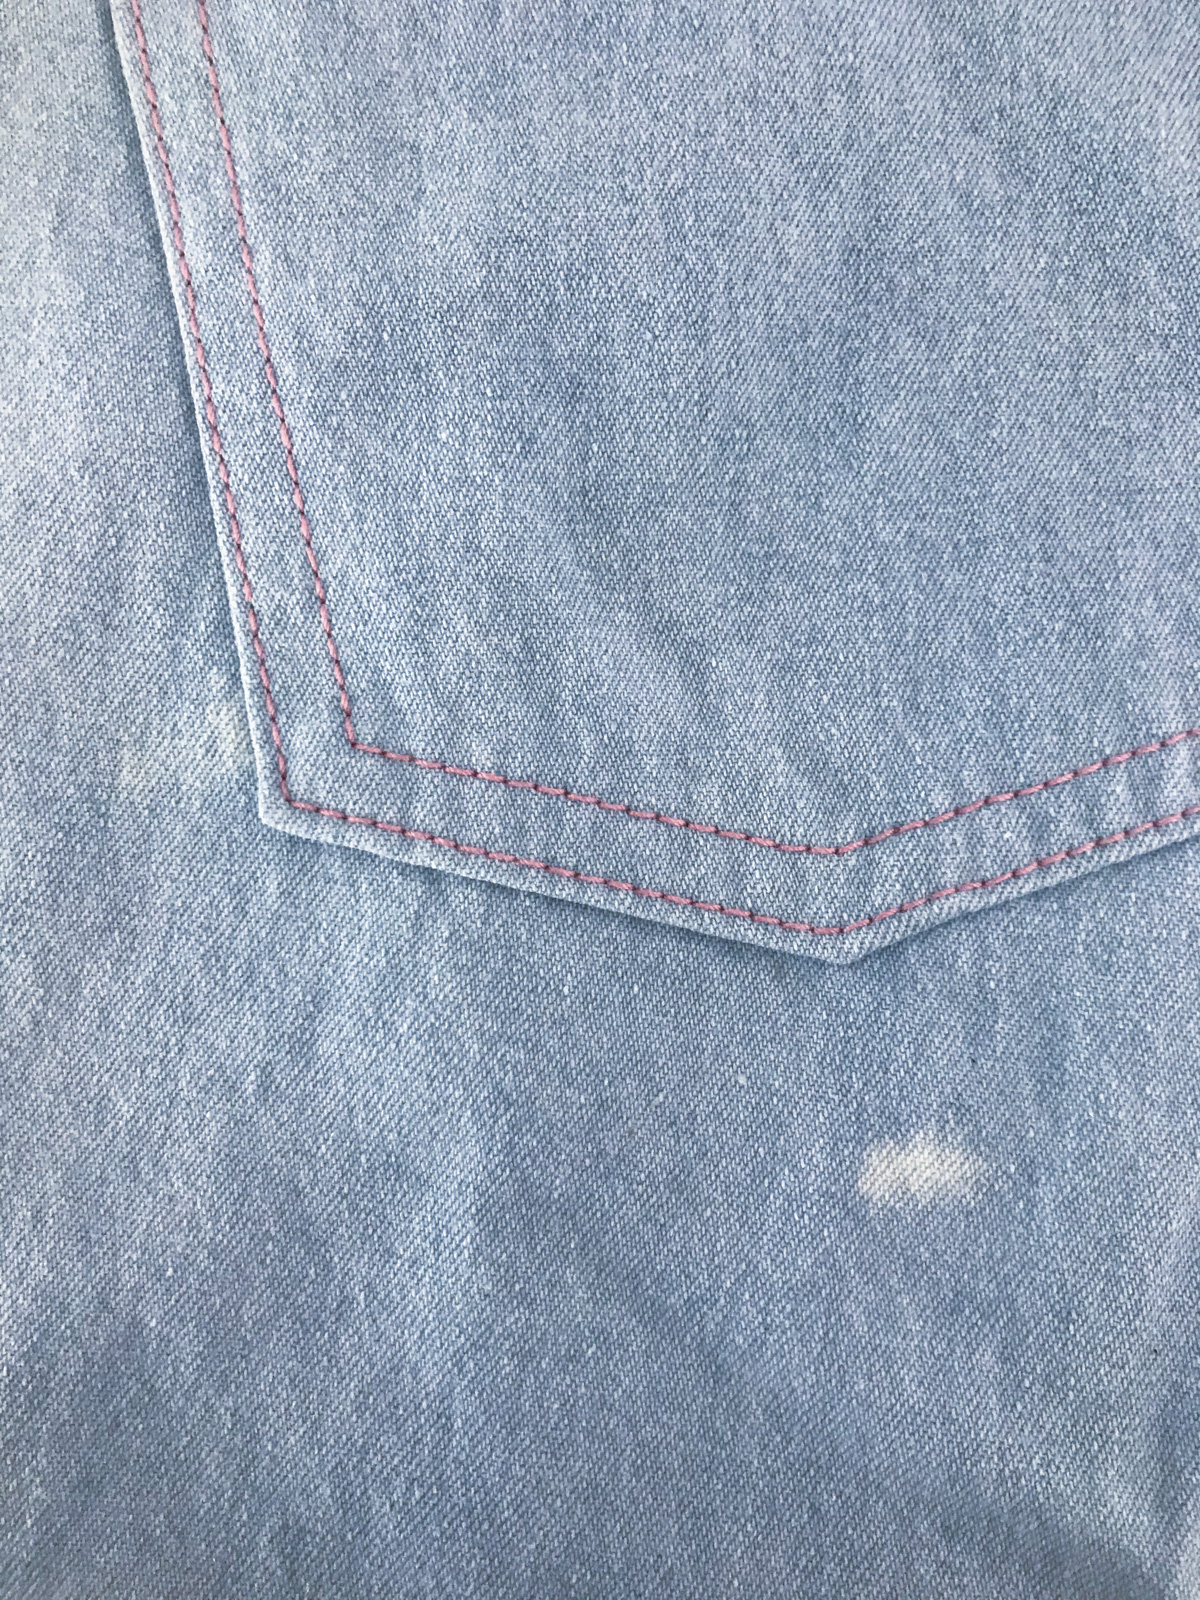 The damage - Covering Stains with Embroidery | Geraldton Wax Embroidered Dawn Shorts